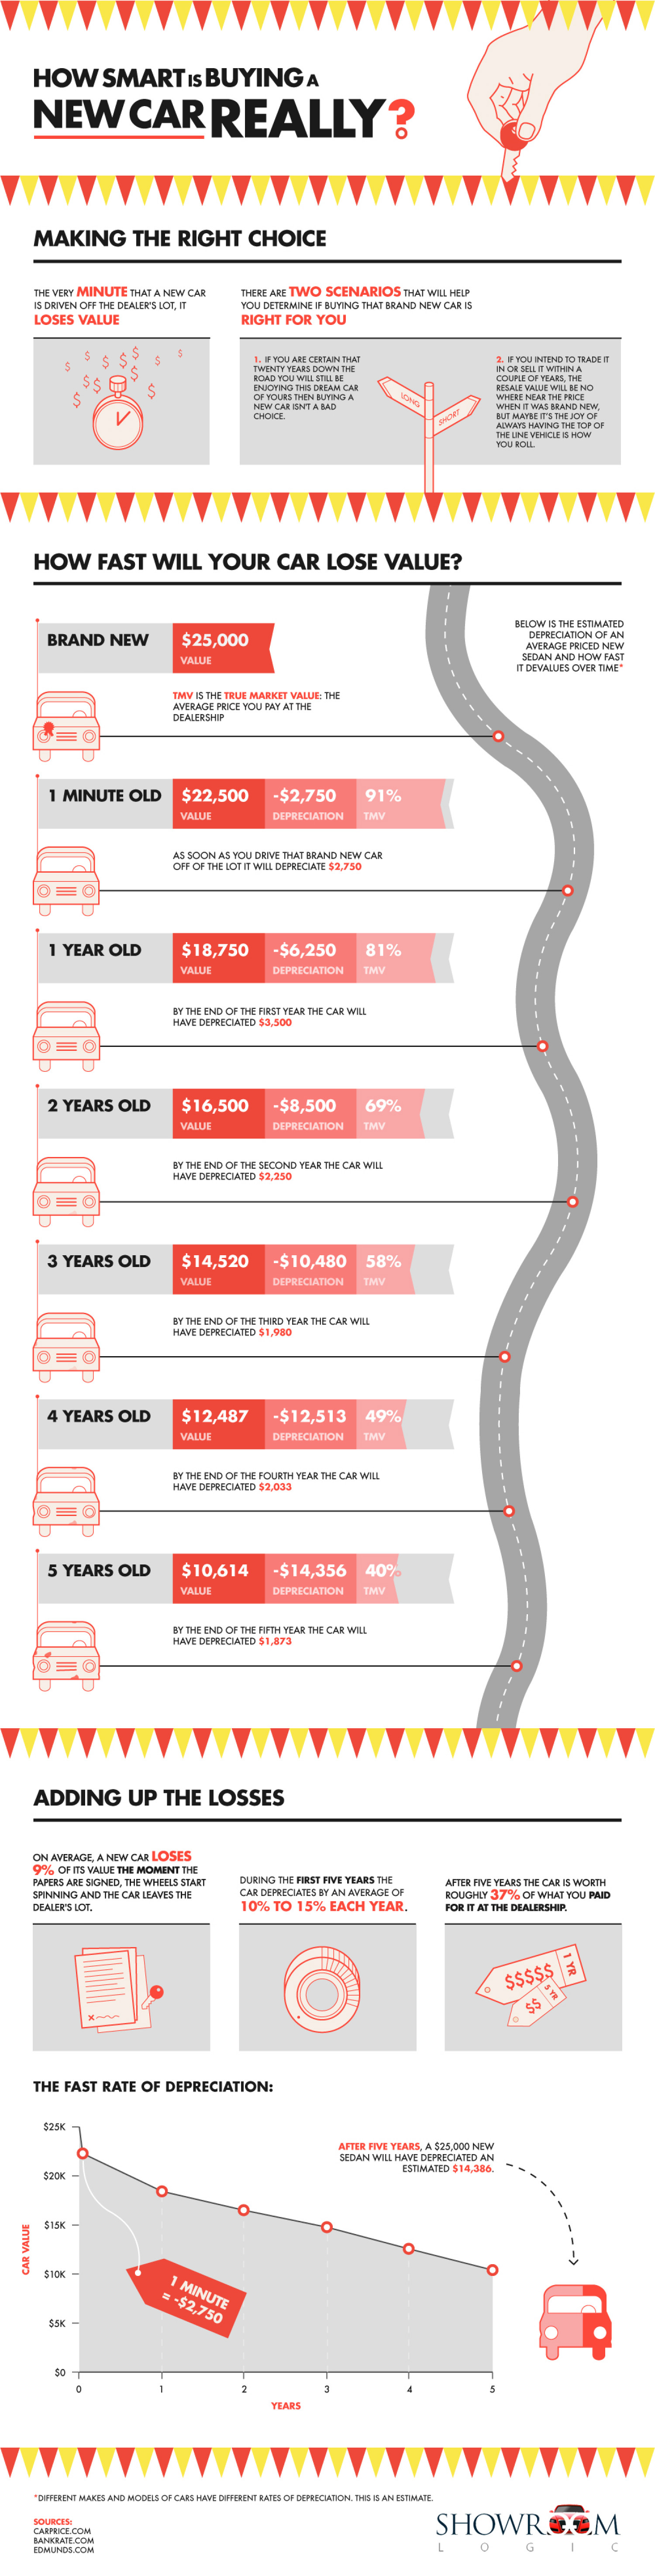 How Fast Does A New Car Depreciate In 2011? Infographic